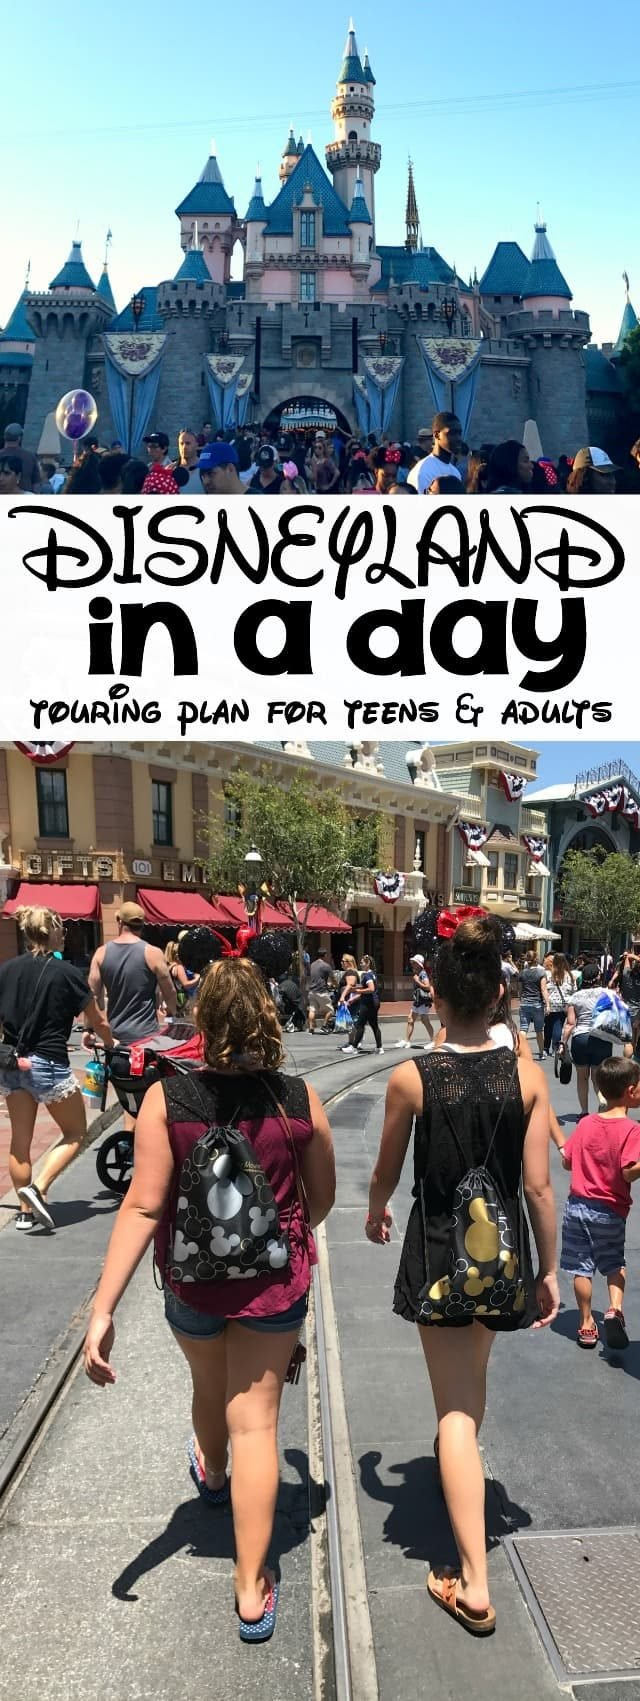 Disneyland in a Day! This Disneyland one day touring plan is perfect for teens and adults. It hits all the big rides and offers tips for how to get them all done before noon, even in summer!